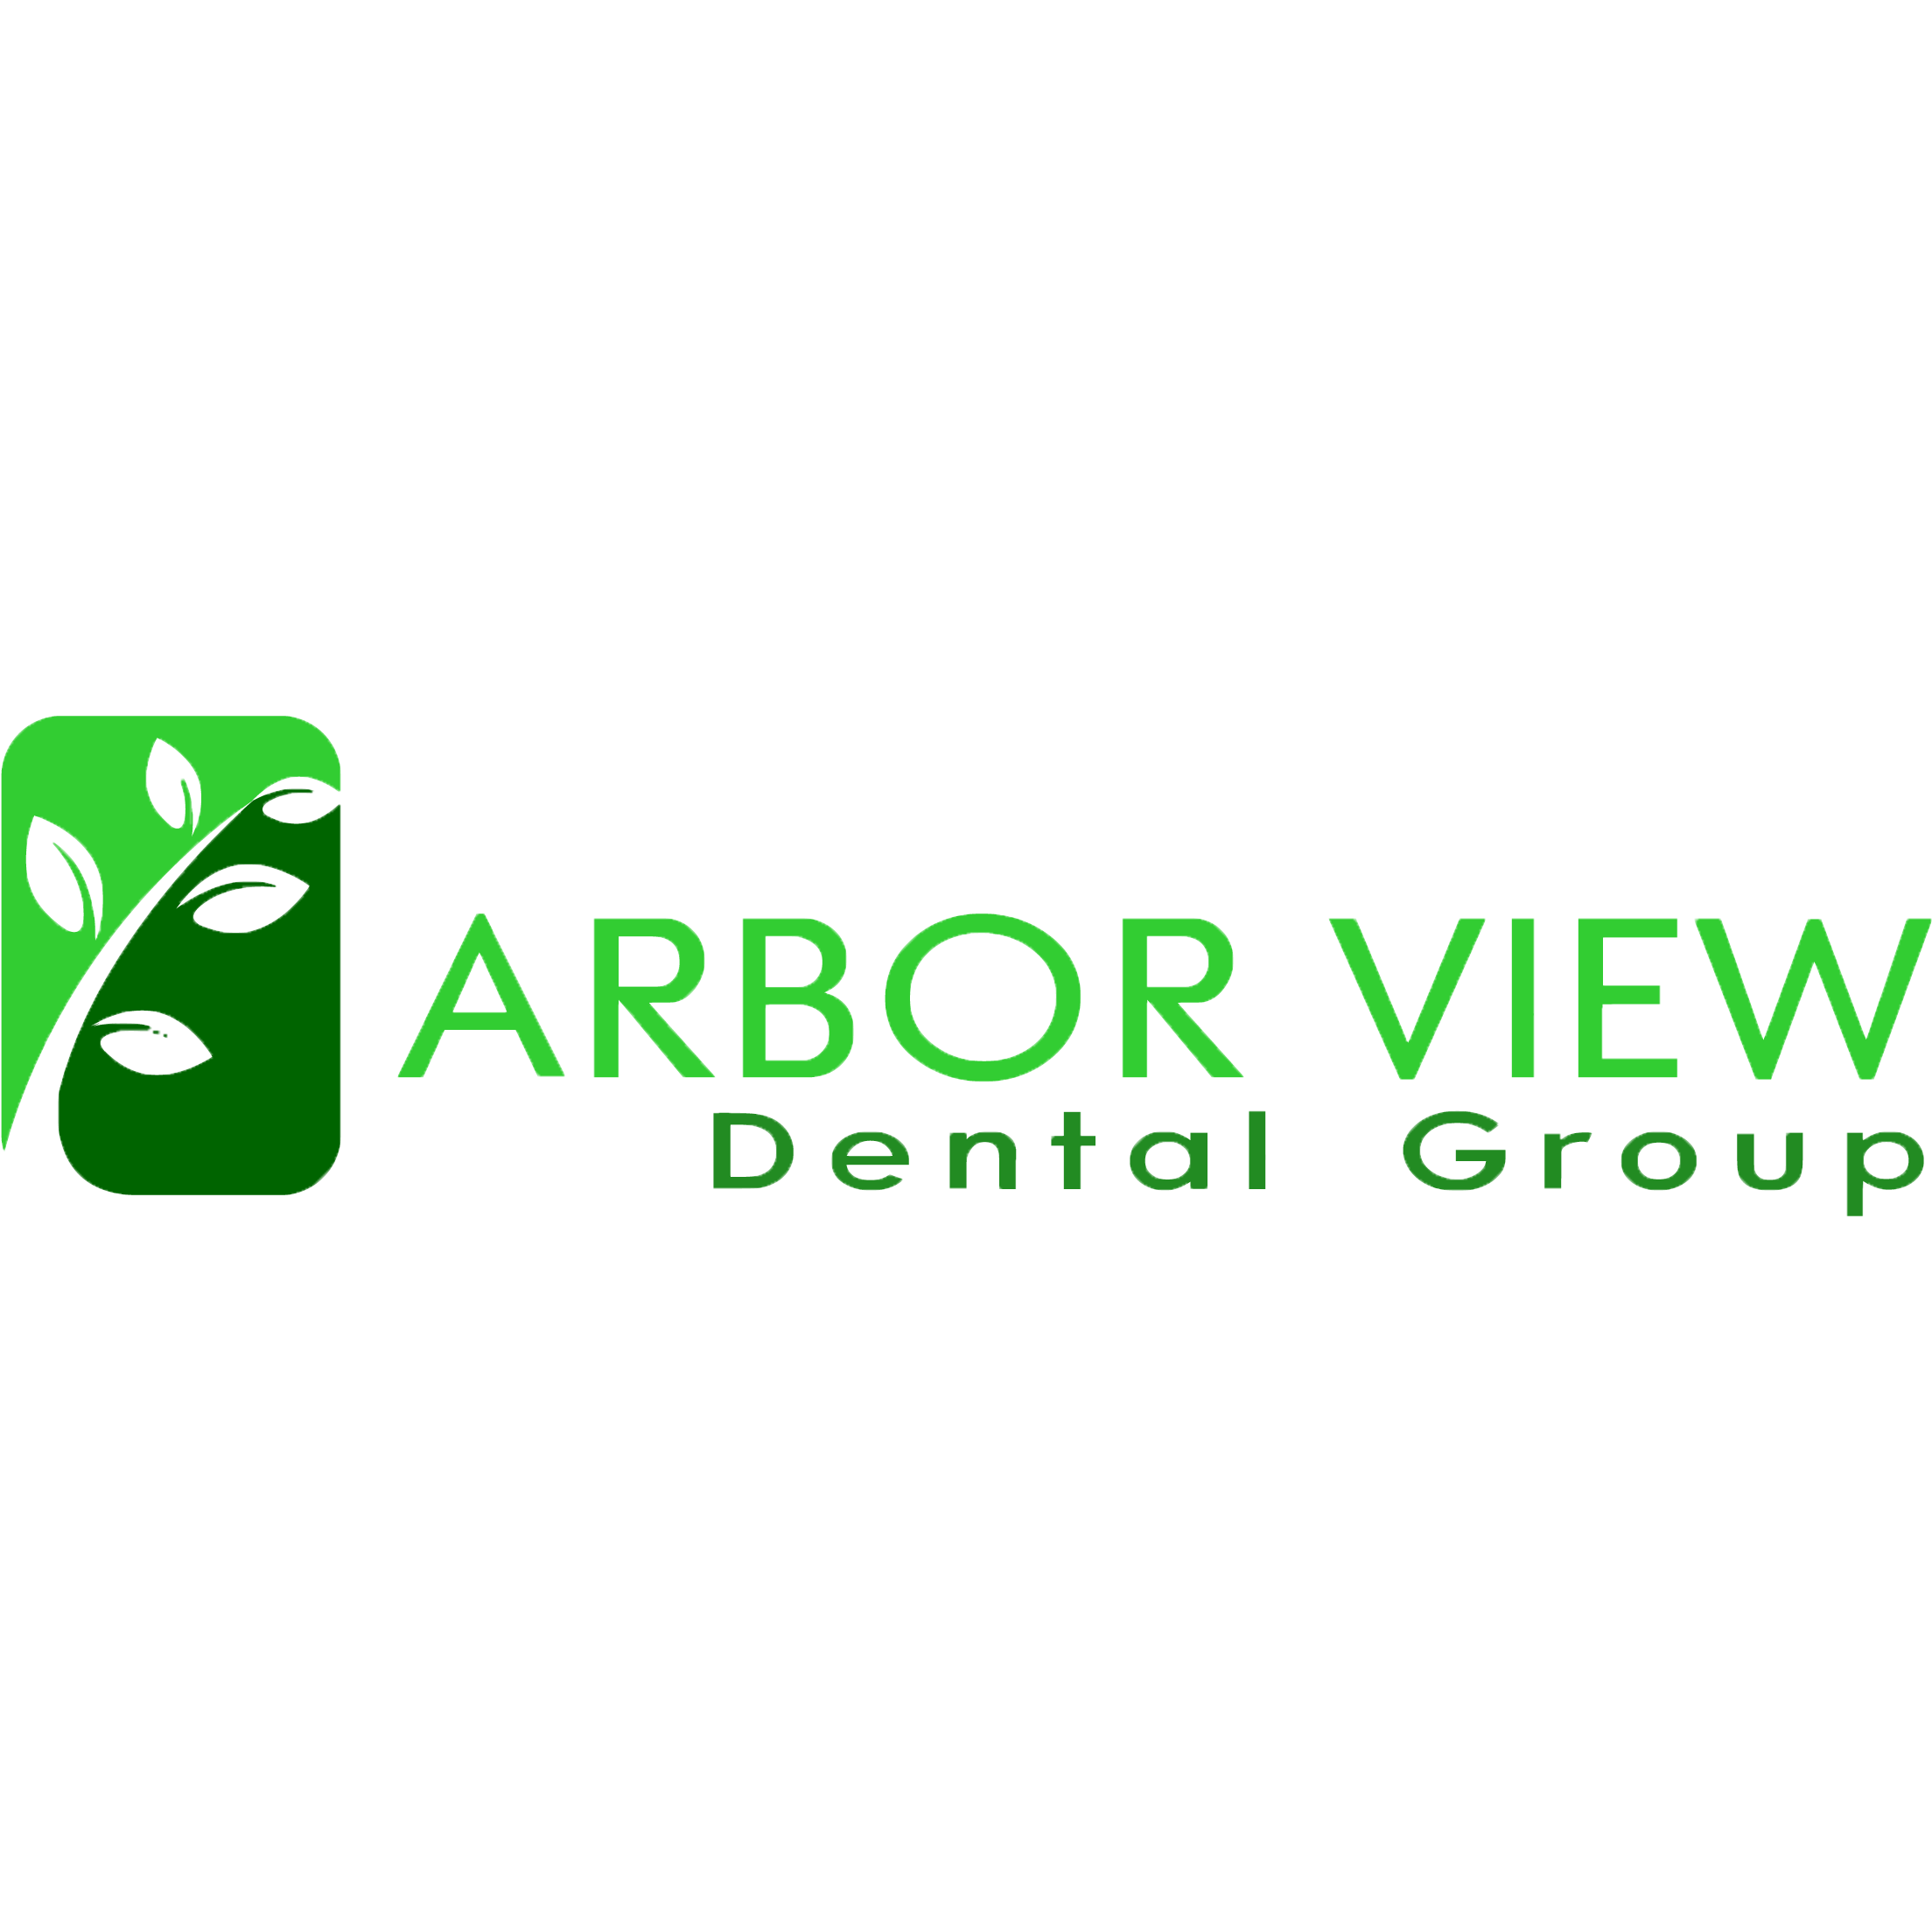 Arbor View Dental Group